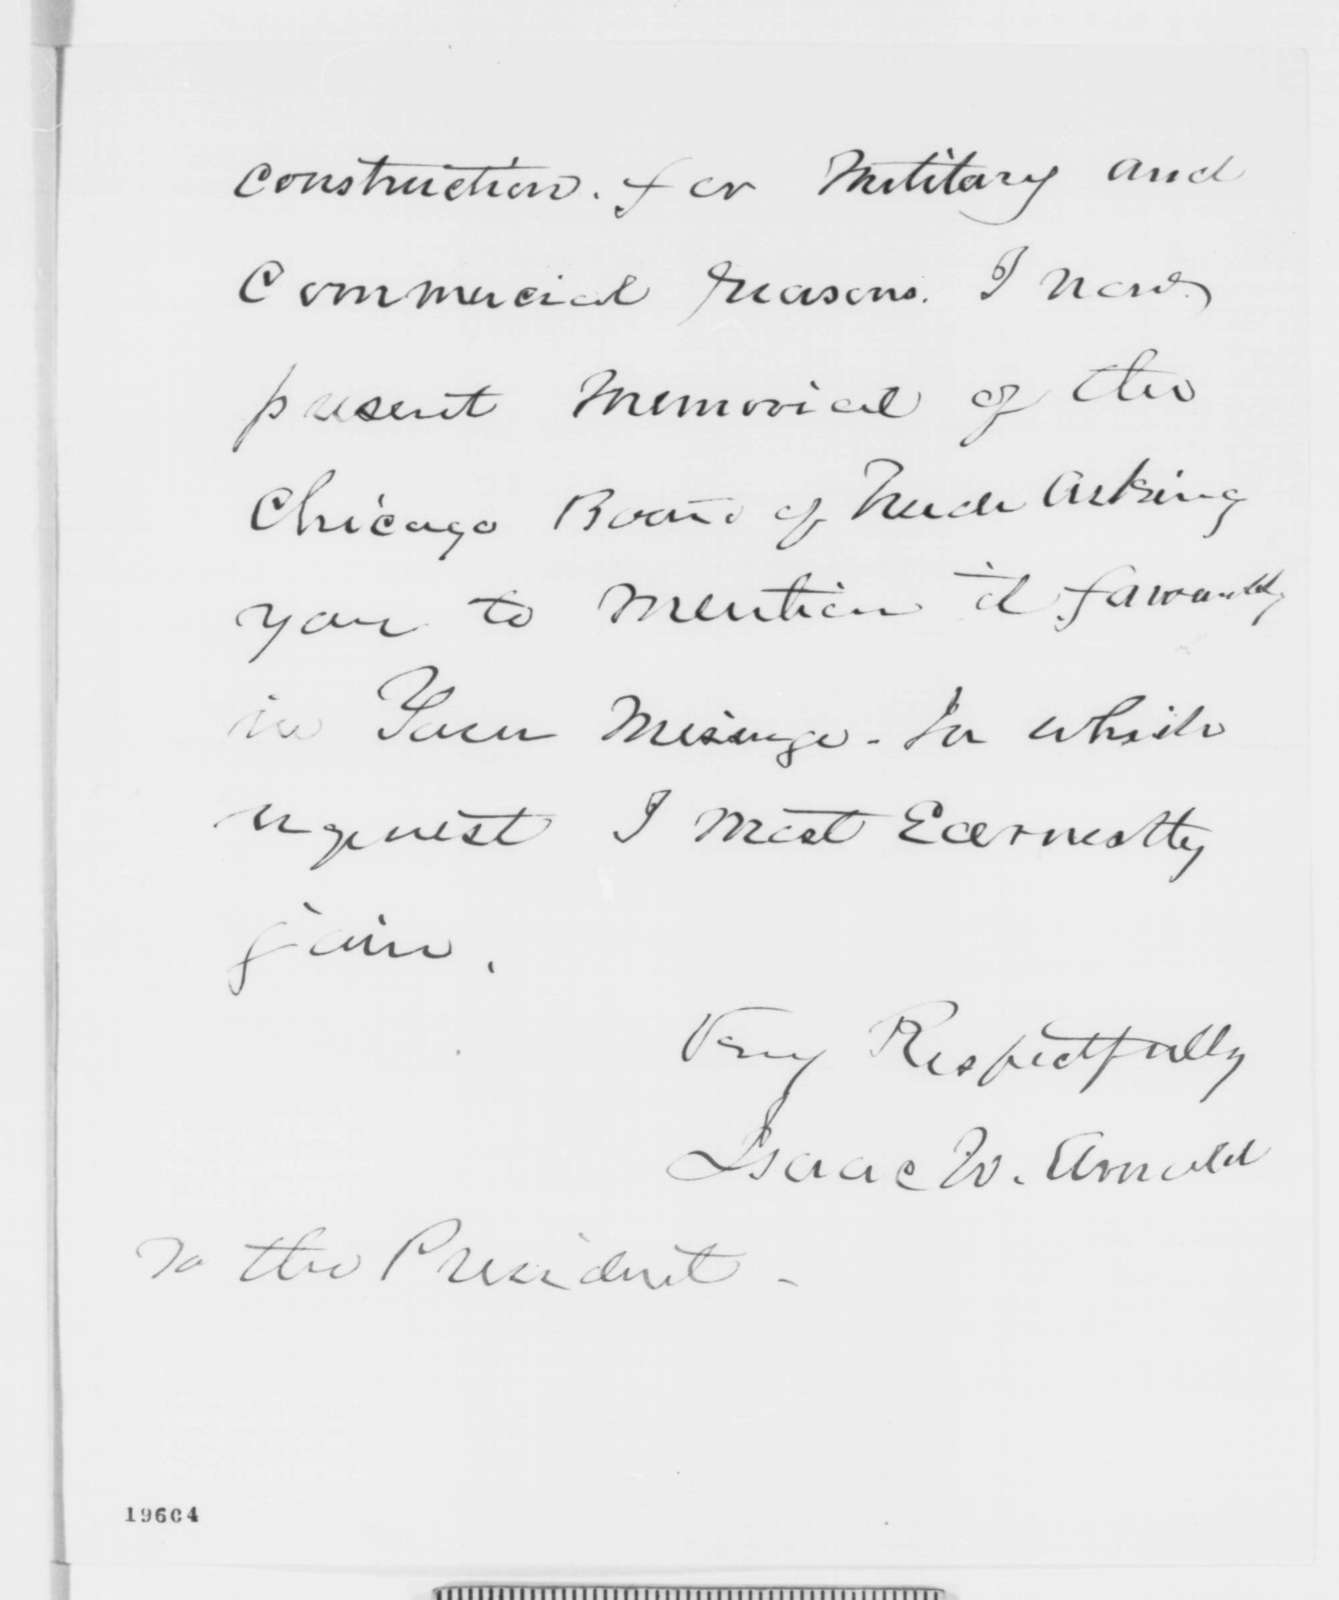 Isaac N. Arnold to Abraham Lincoln, Thursday, November 20, 1862  (Enlargement of the Illinois and Michigan Canal)